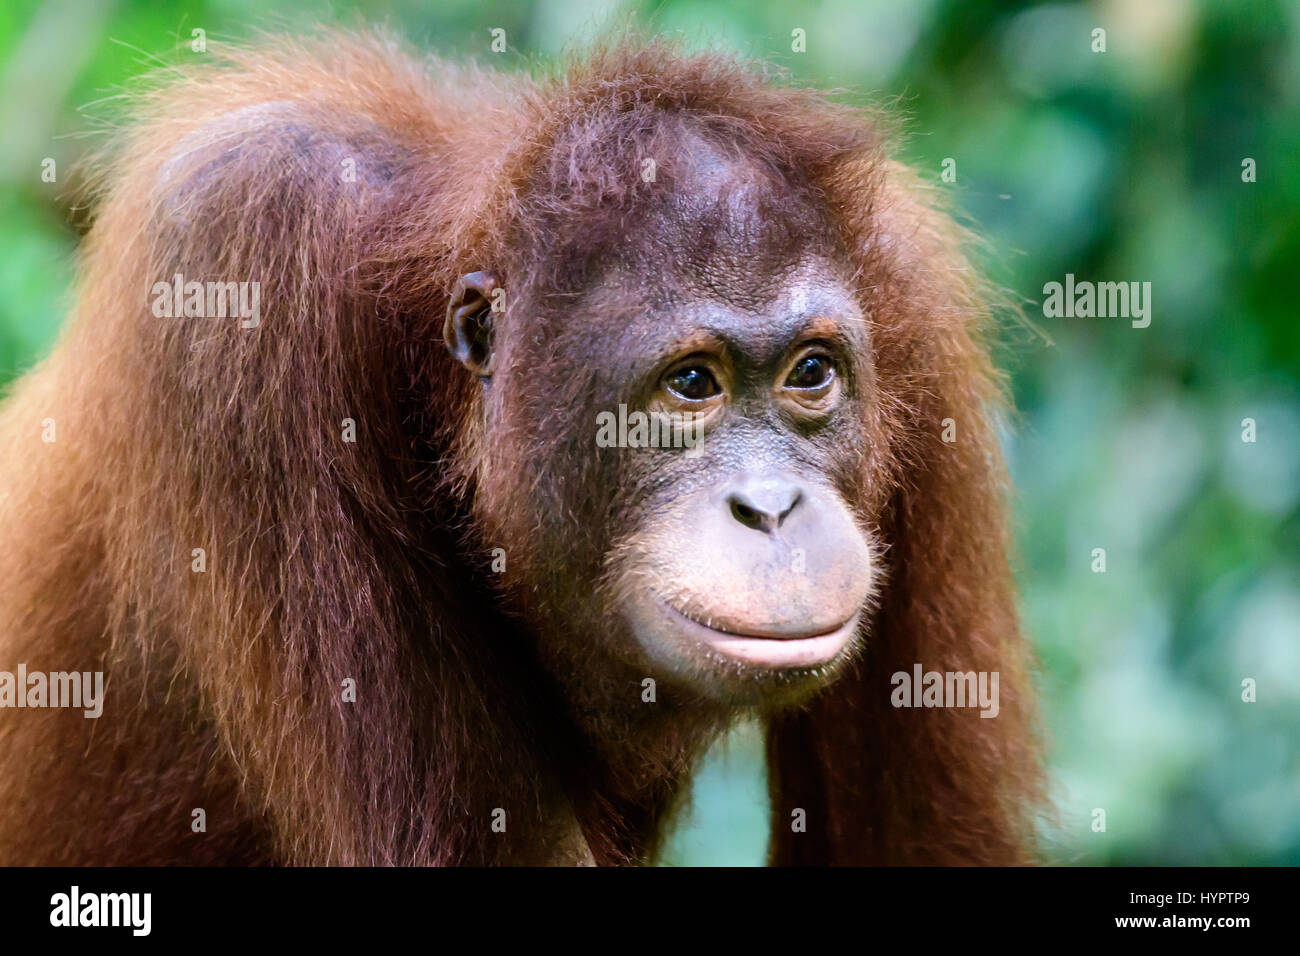 Intelligent face of an Orangutan - Stock Image